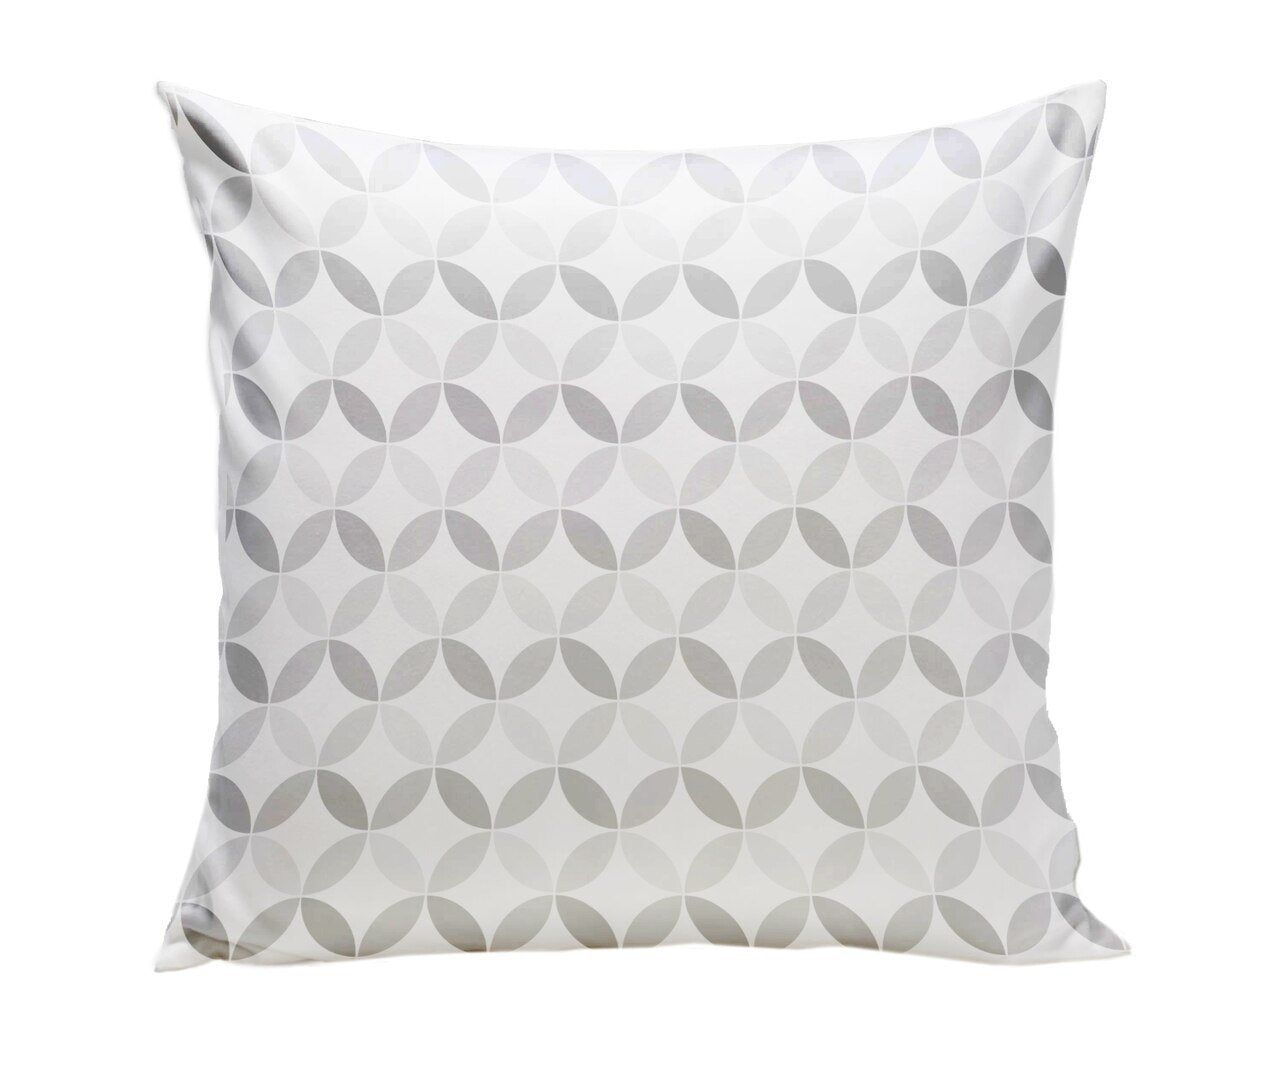 Spot On Square Tops Organic Pillow